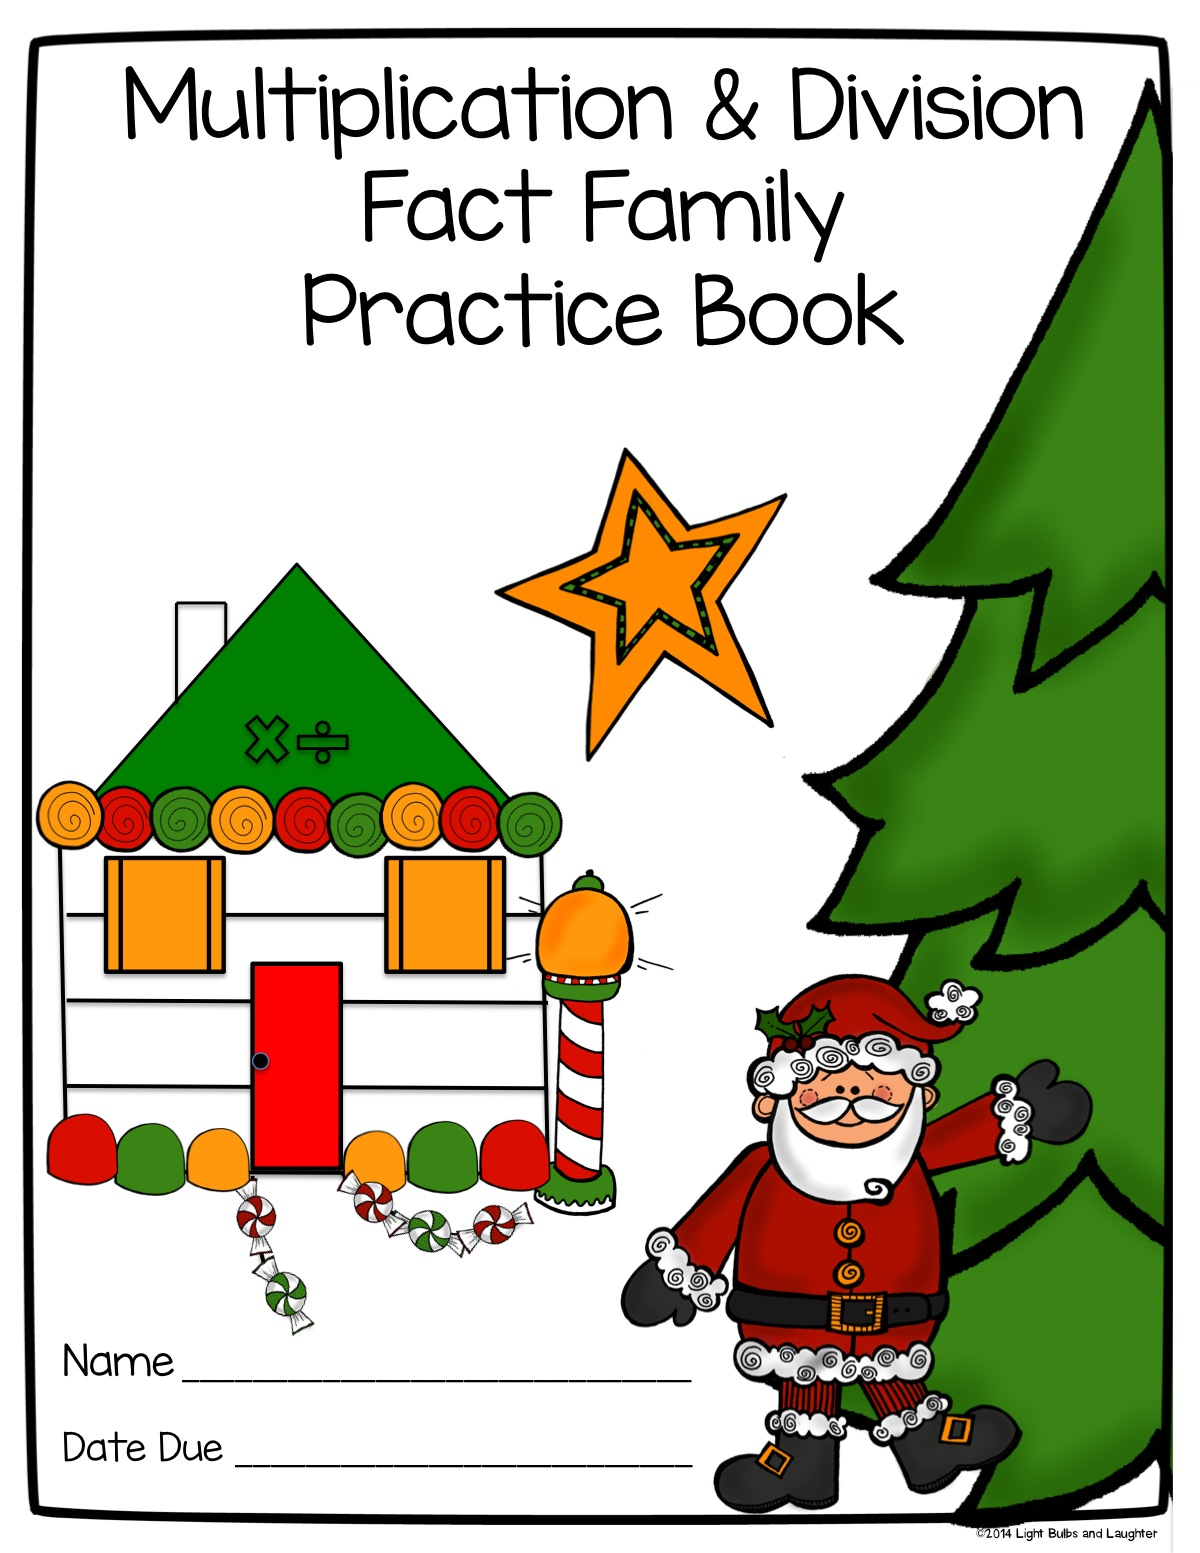 Multiplication and Division Fact Family Practice Book Cover - Light Bulbs and Laughter